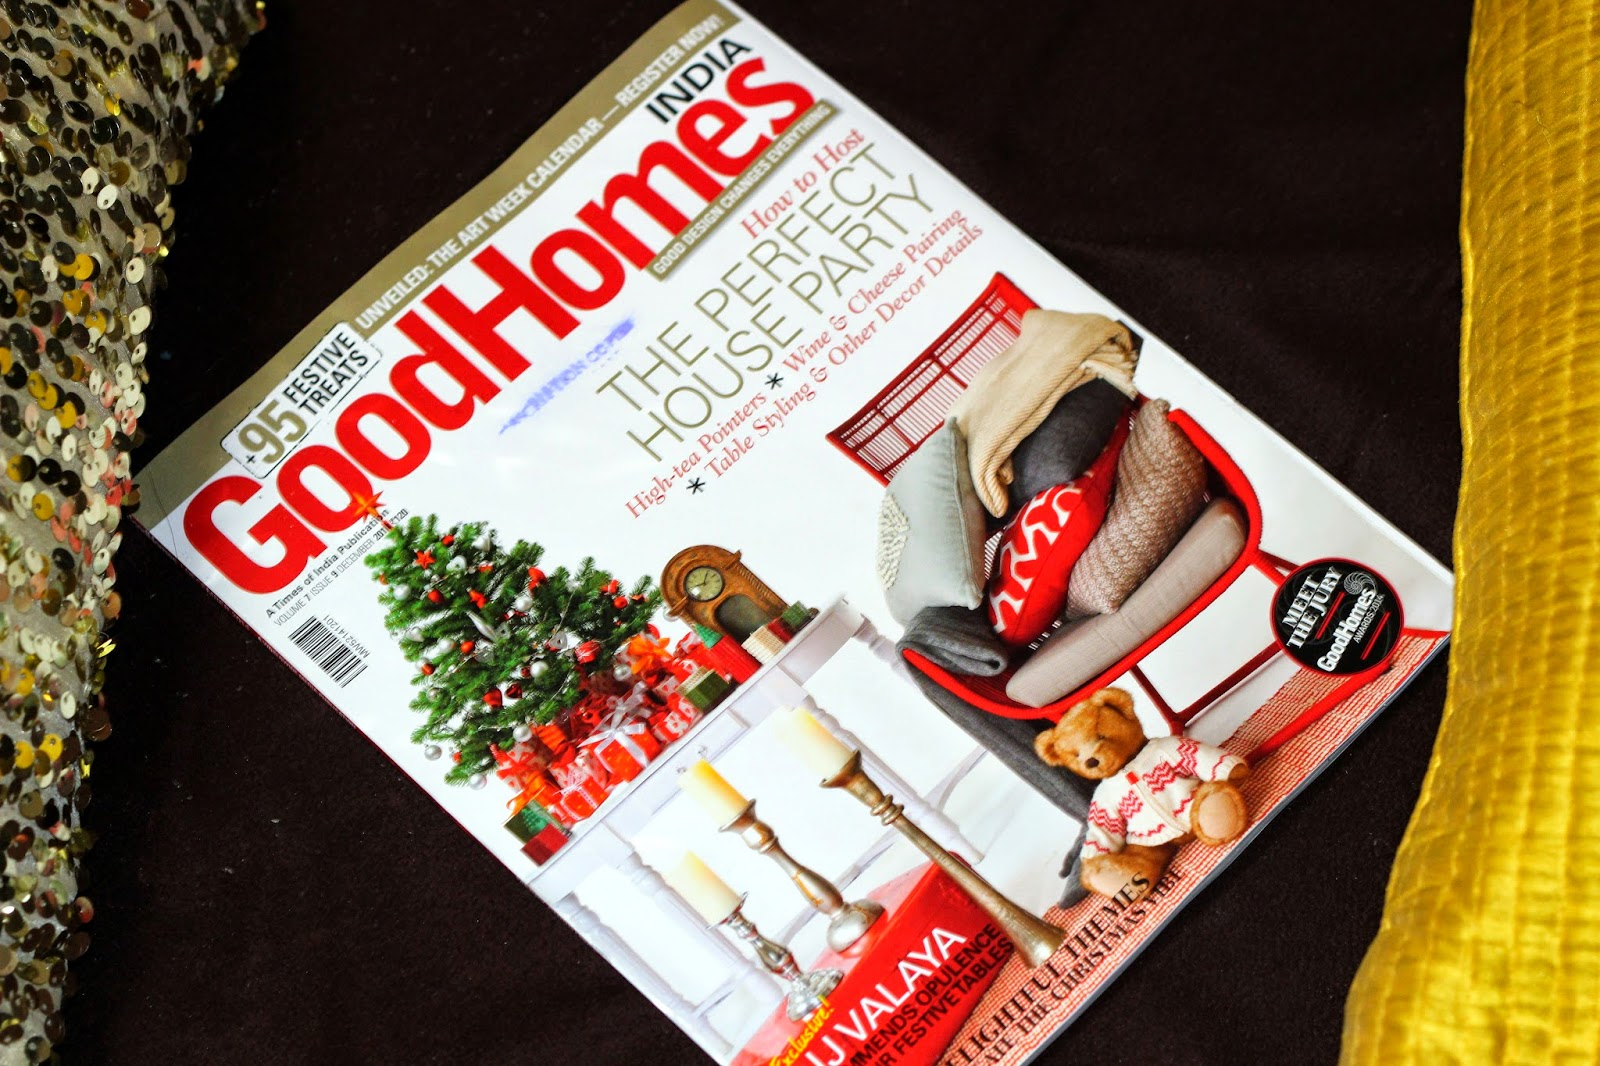 Good Homes December 2014 - Tips on How To Host The Perfect House Party!